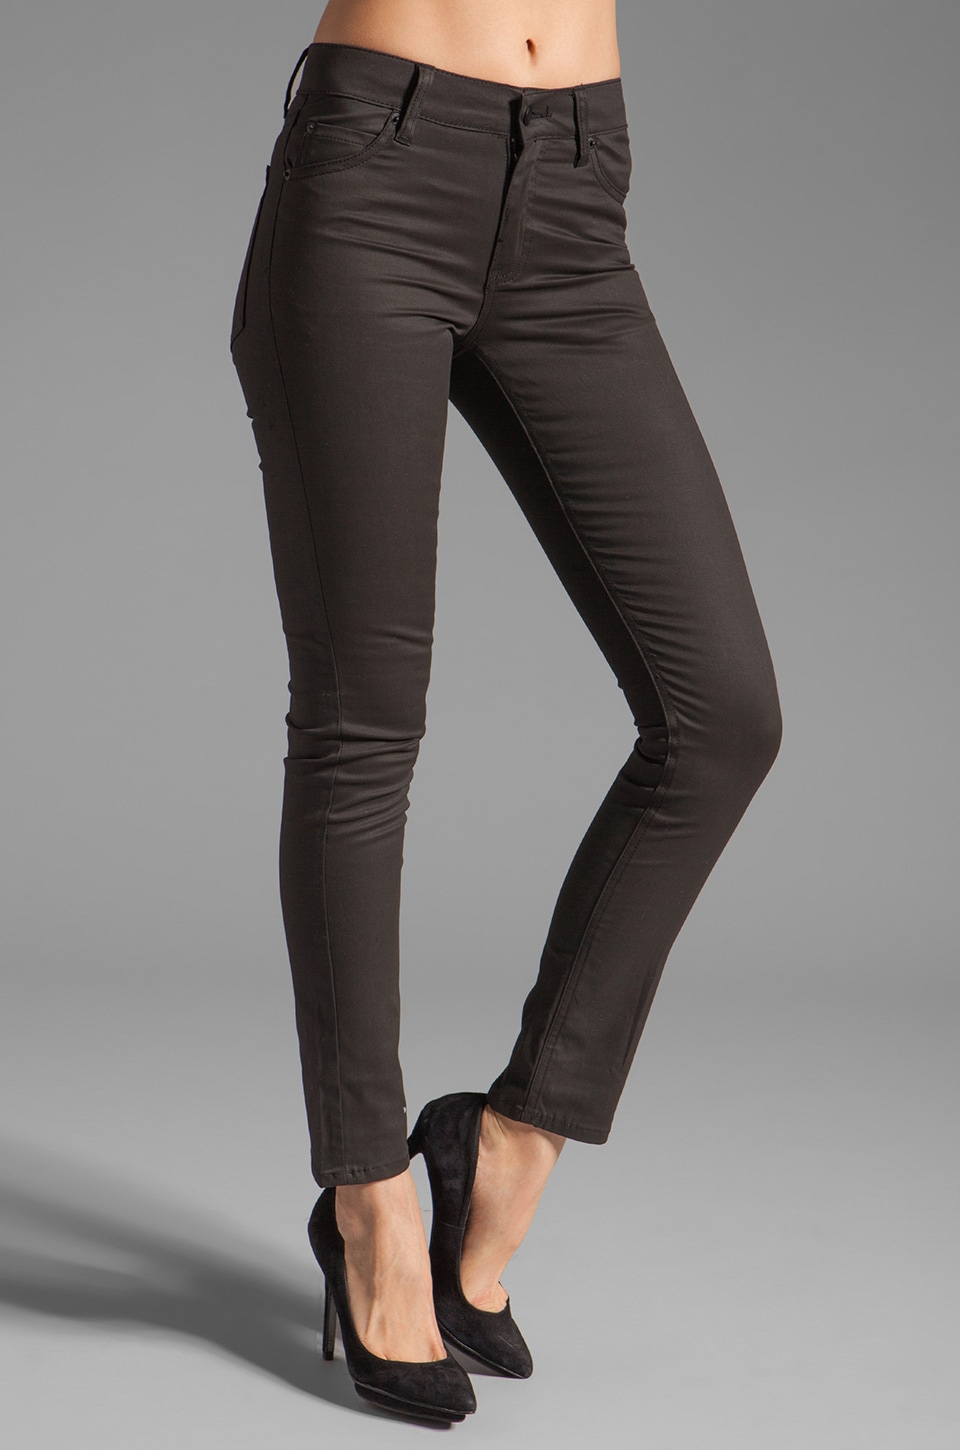 Cheap Monday Tight Jeans in Hard Coated